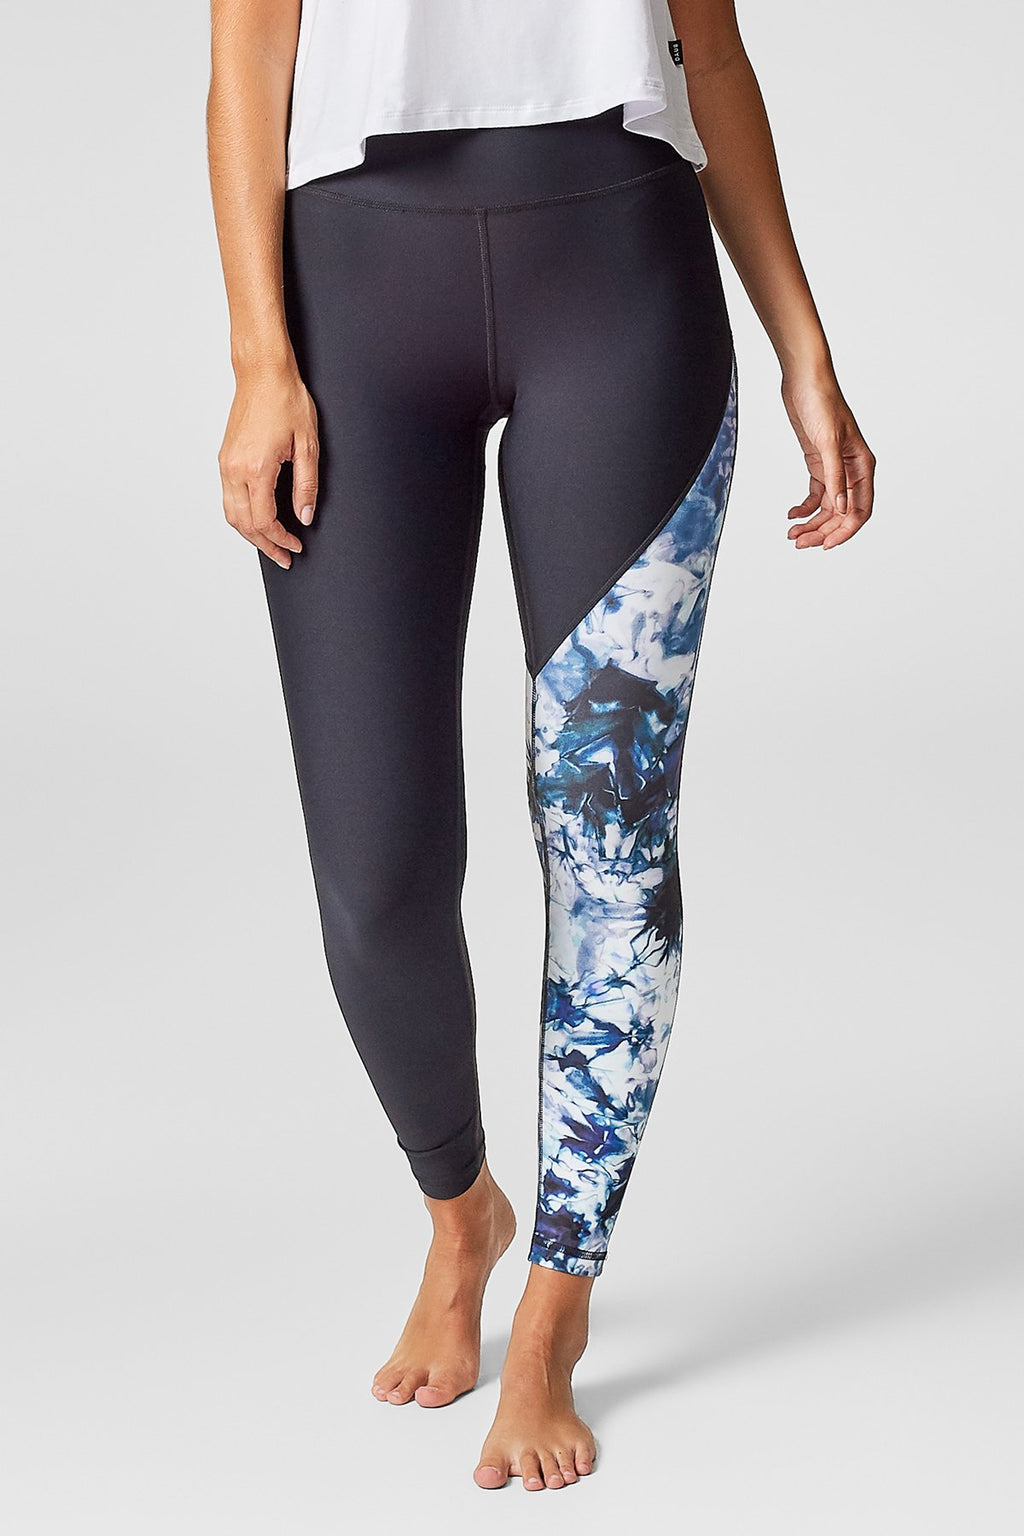 Daub & Design Signature legging Abyss Sweat Society Canada USA